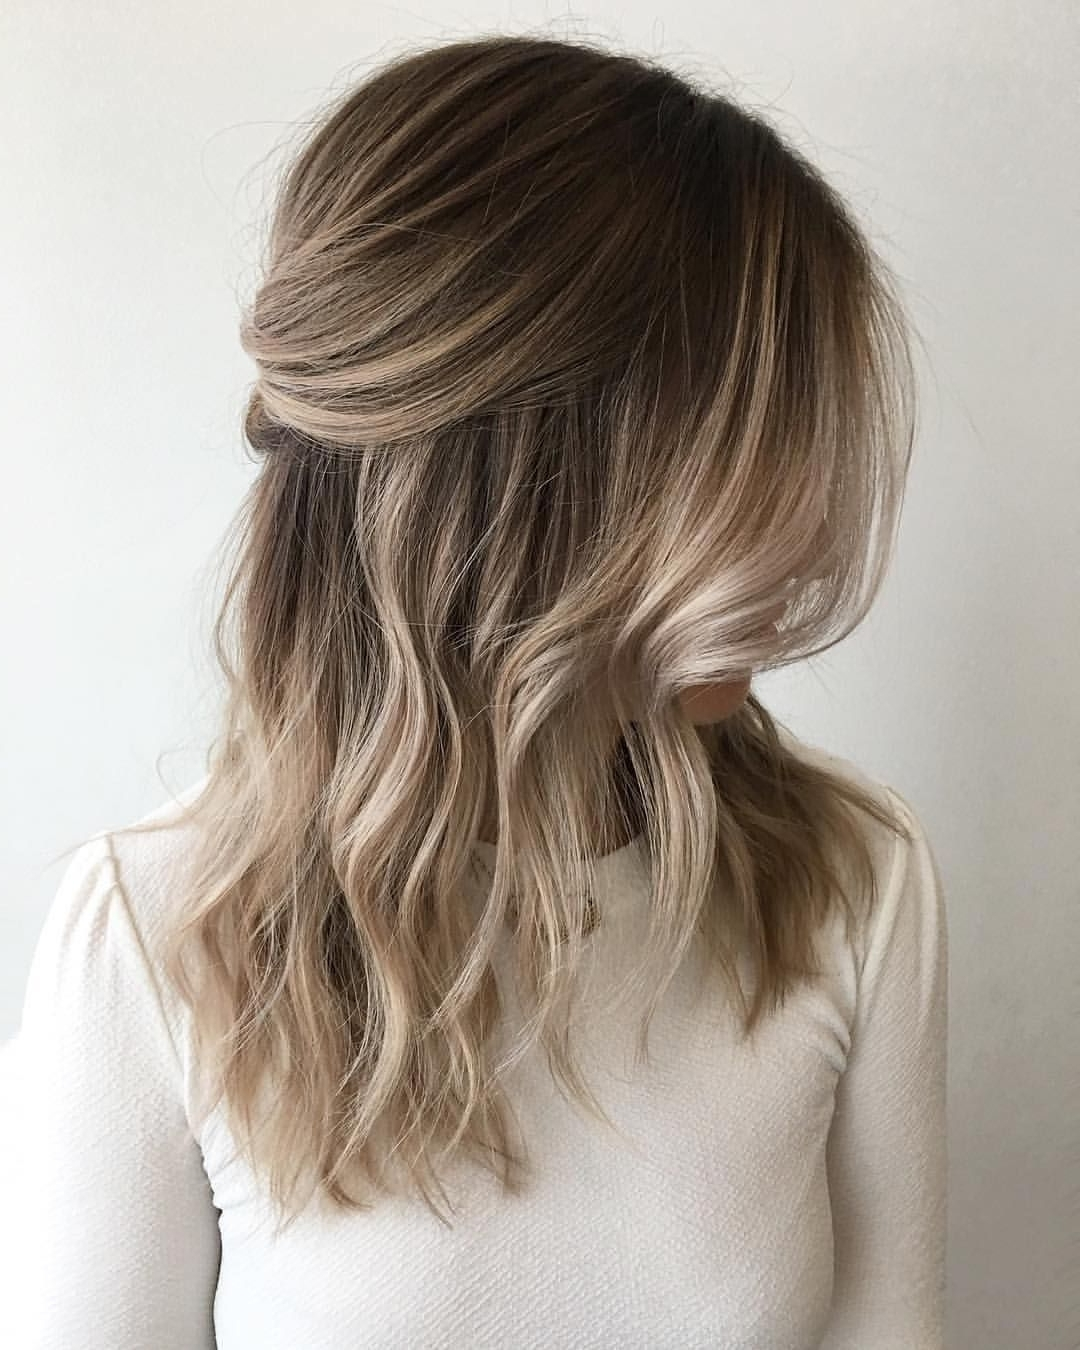 2,132 Likes, 17 Comments – Cities Best Hair Artists Throughout Well Known Sandy Blonde Hairstyles (View 1 of 20)